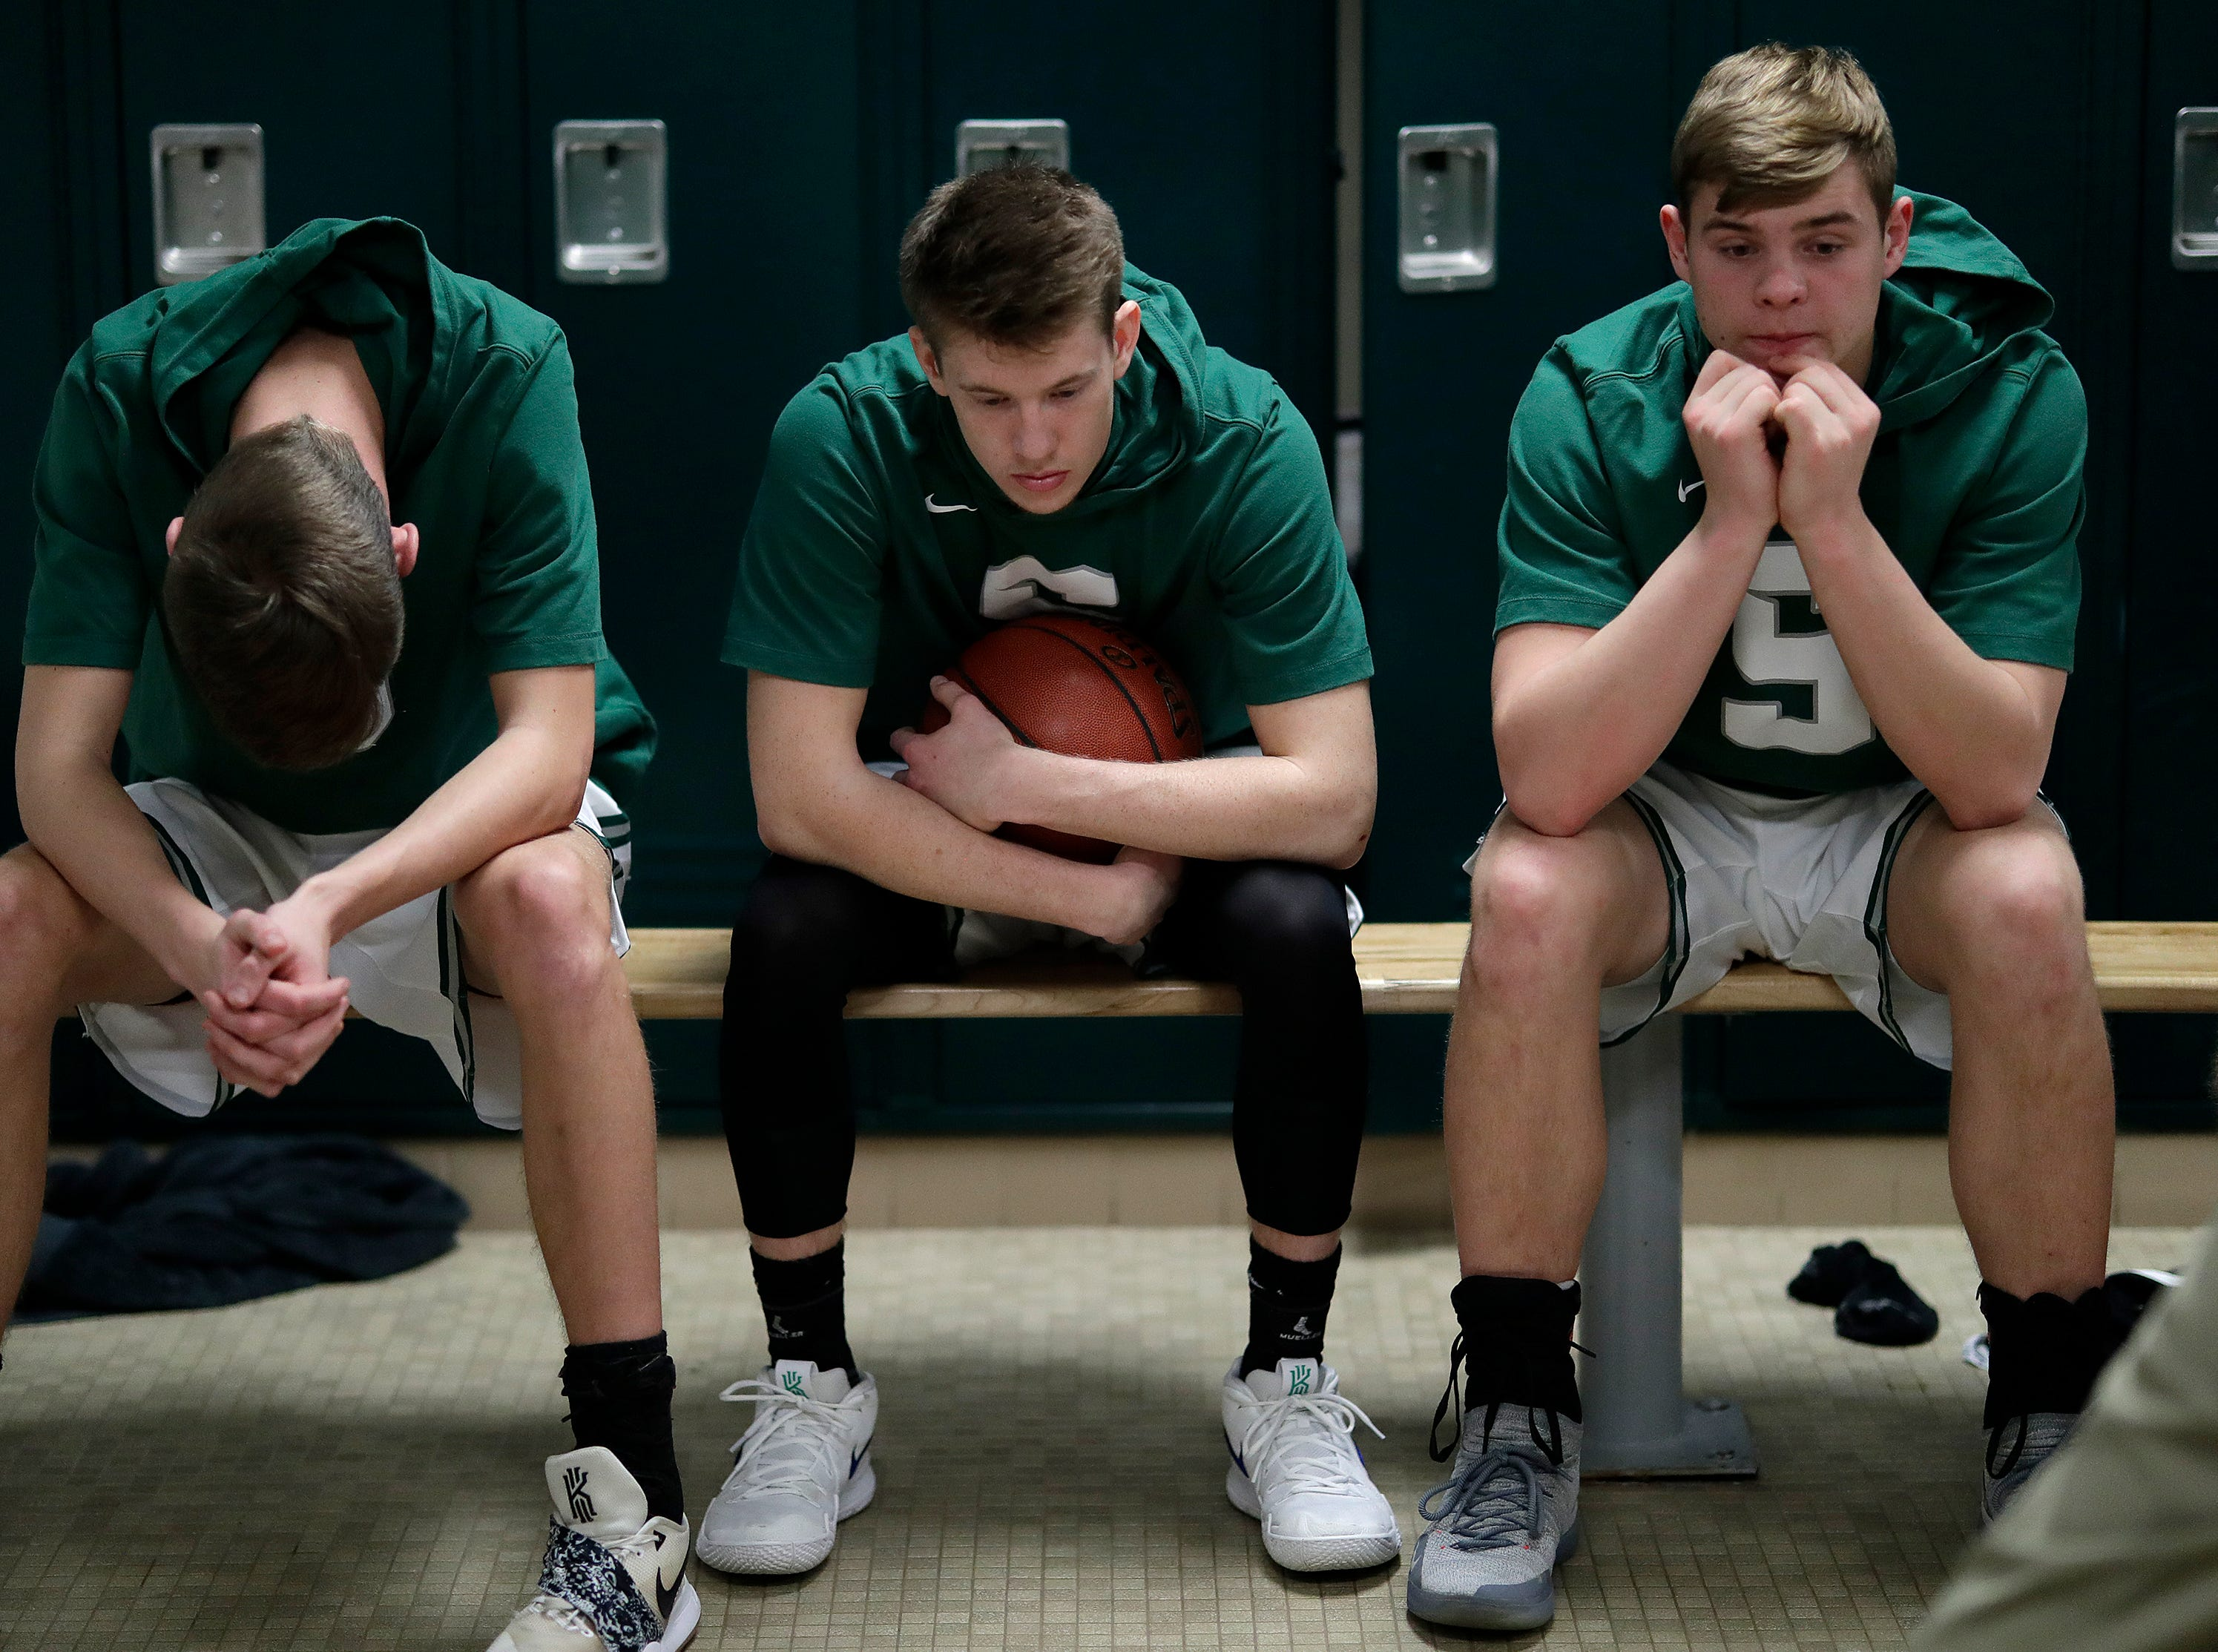 Shiocton High School's Corbin Lorge, left, Jack Fielding and Deven Bedor, right, get mentally prepared in the locker room during the coaches talk prior to playing against Sturgeon Bay High School's basketball team Thursday, December 27, 2018, in Shiocton, Wis. 